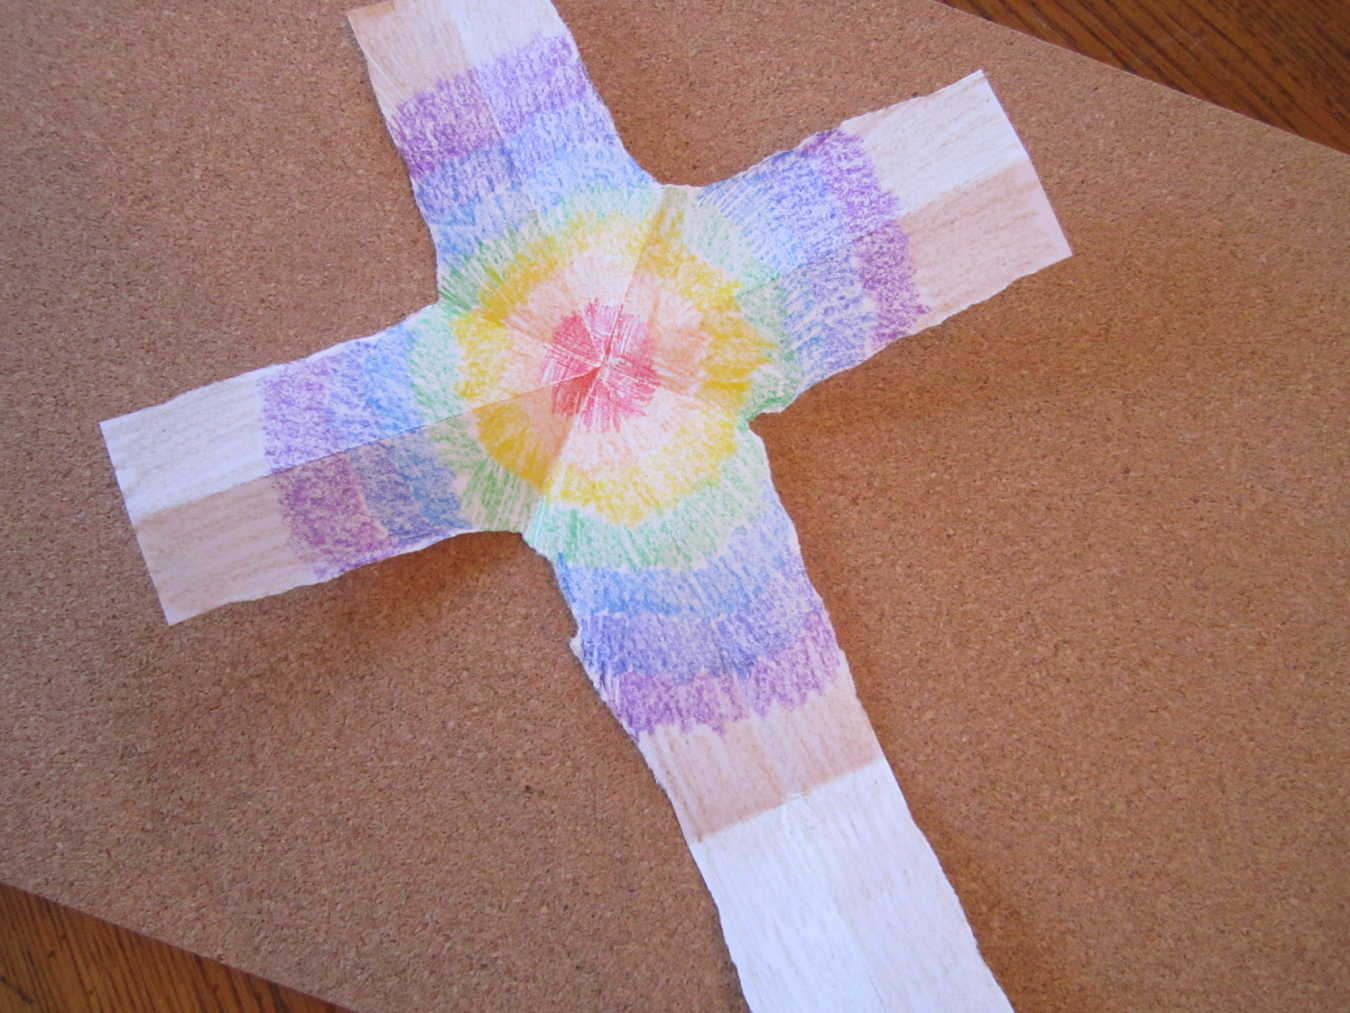 A Paper Cross – Teaching Good Friday to Children